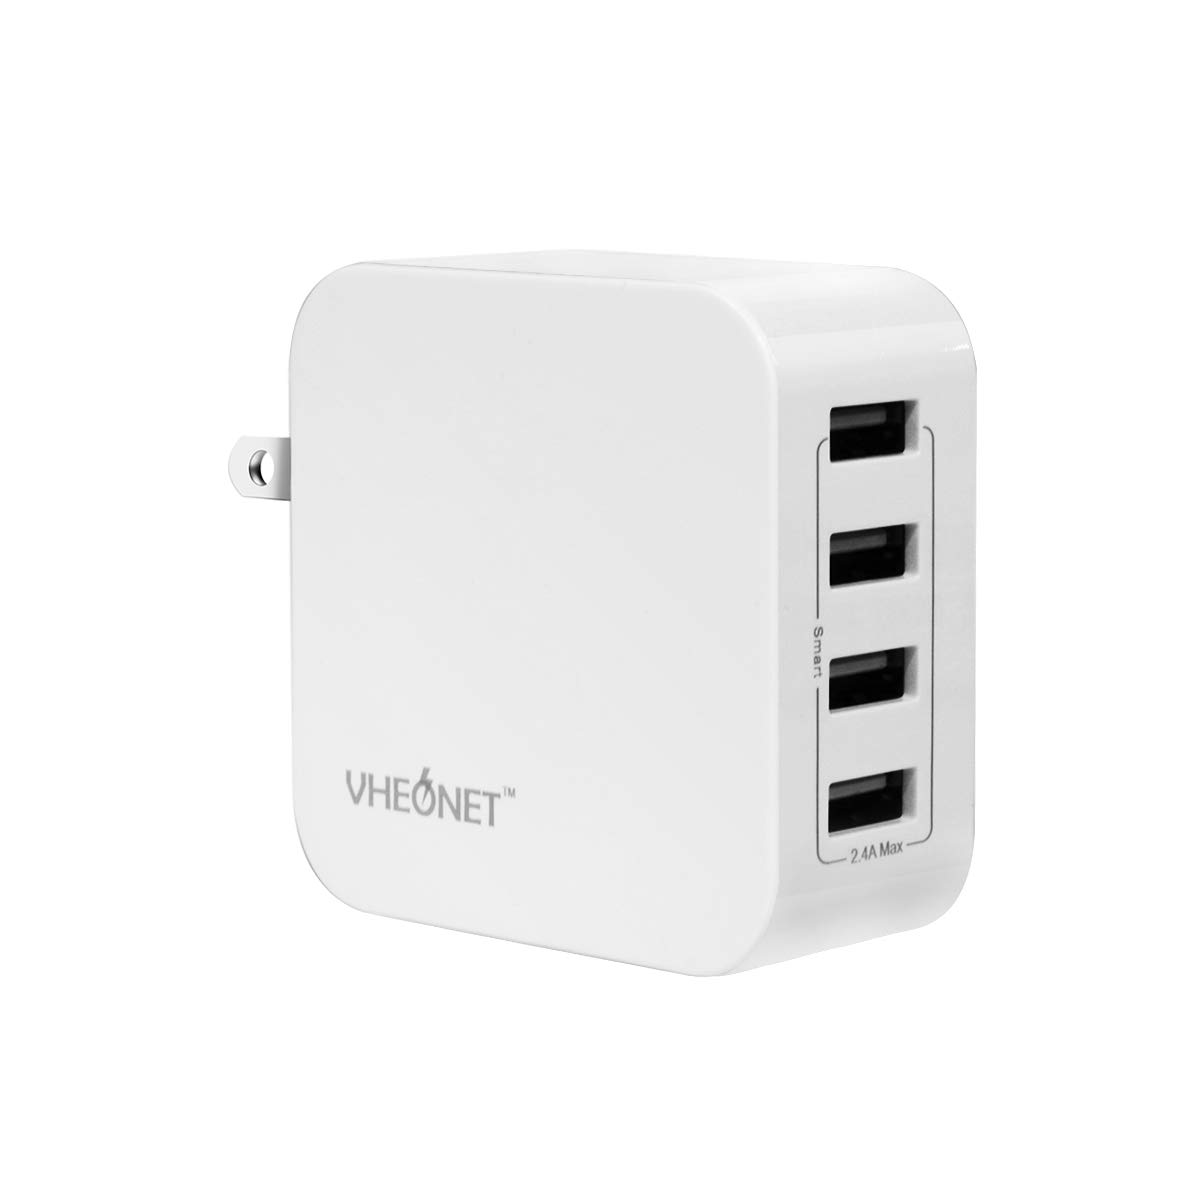 24W 4 Port USB Wall Charger with Foldable Plug for iPhone Xs/XS Max/XR/X/8/7/6/Plus, iPad Pro/Air 2, Galaxy/Note, LG, Nexus